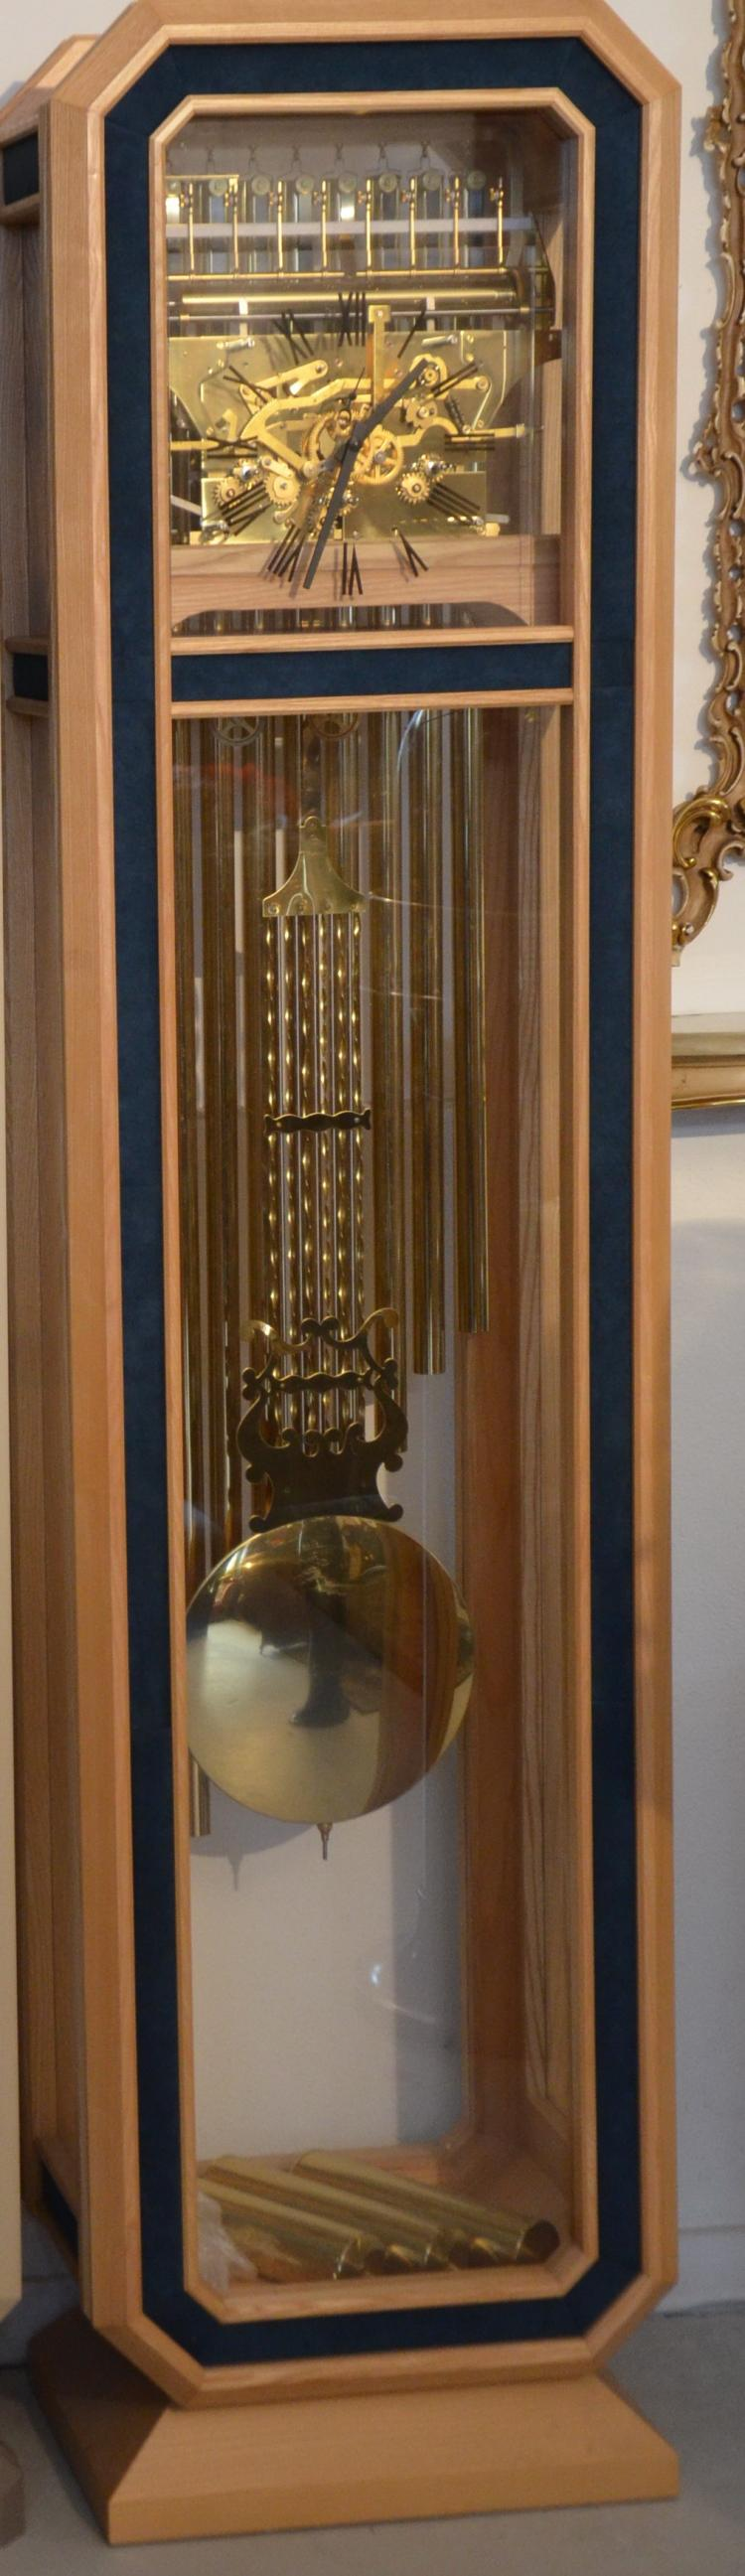 Designer Clock with 9 Chimes